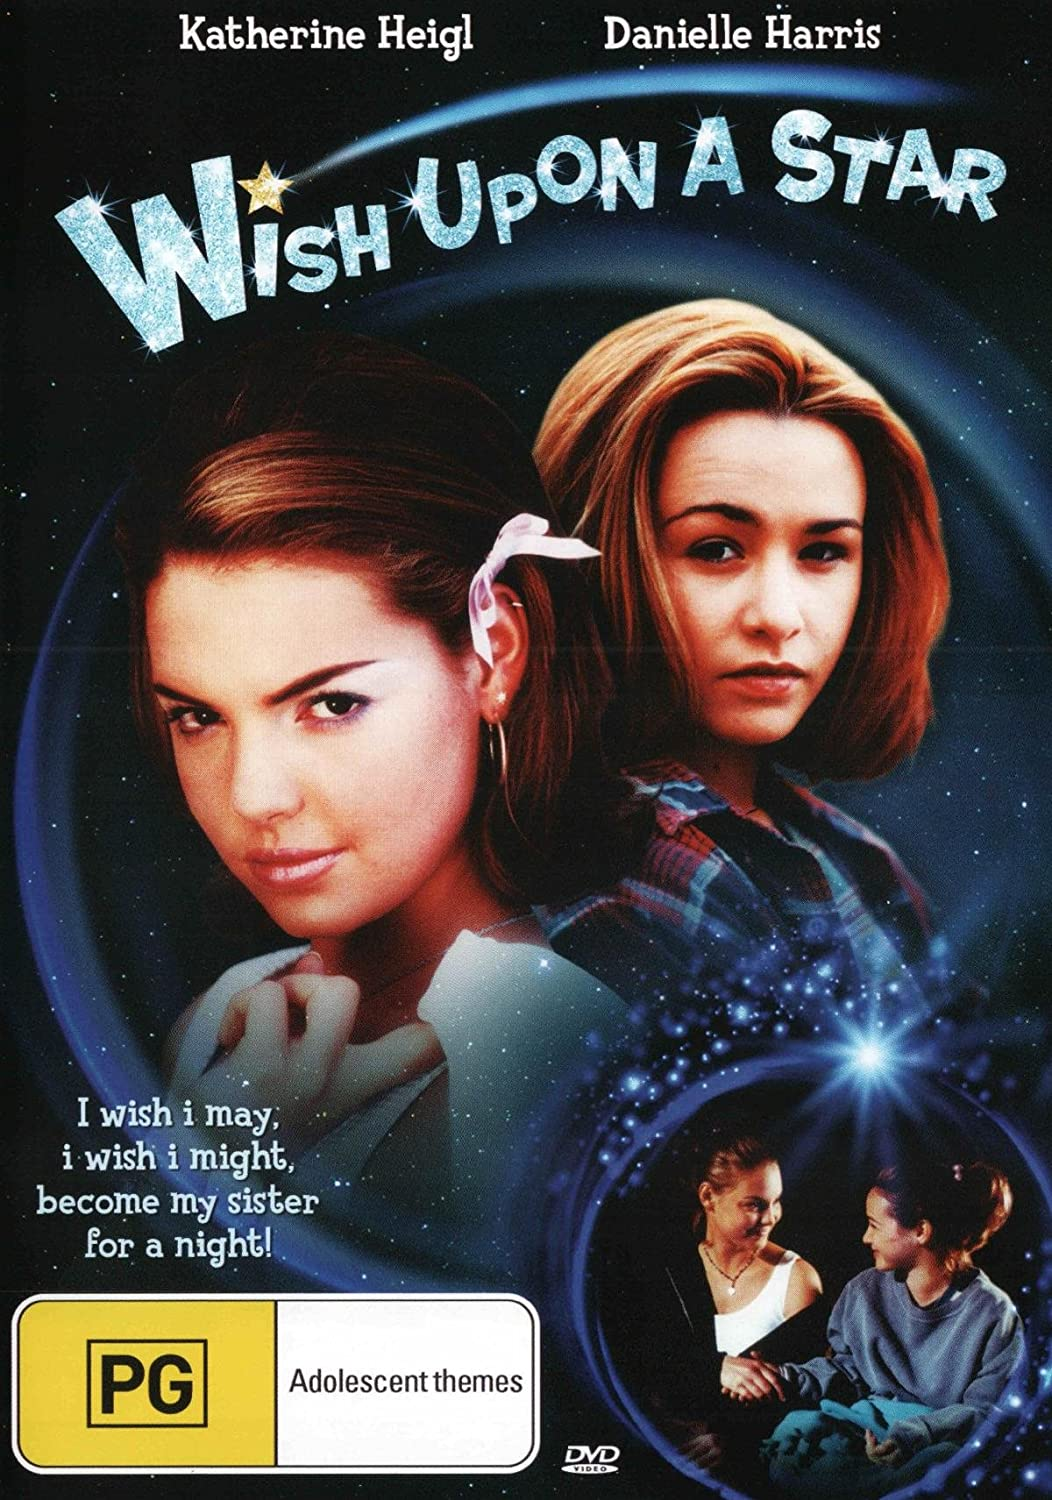 Amazon.com: Wish Upon a Star: Donnie Jeffcoat, Danielle Harris ...